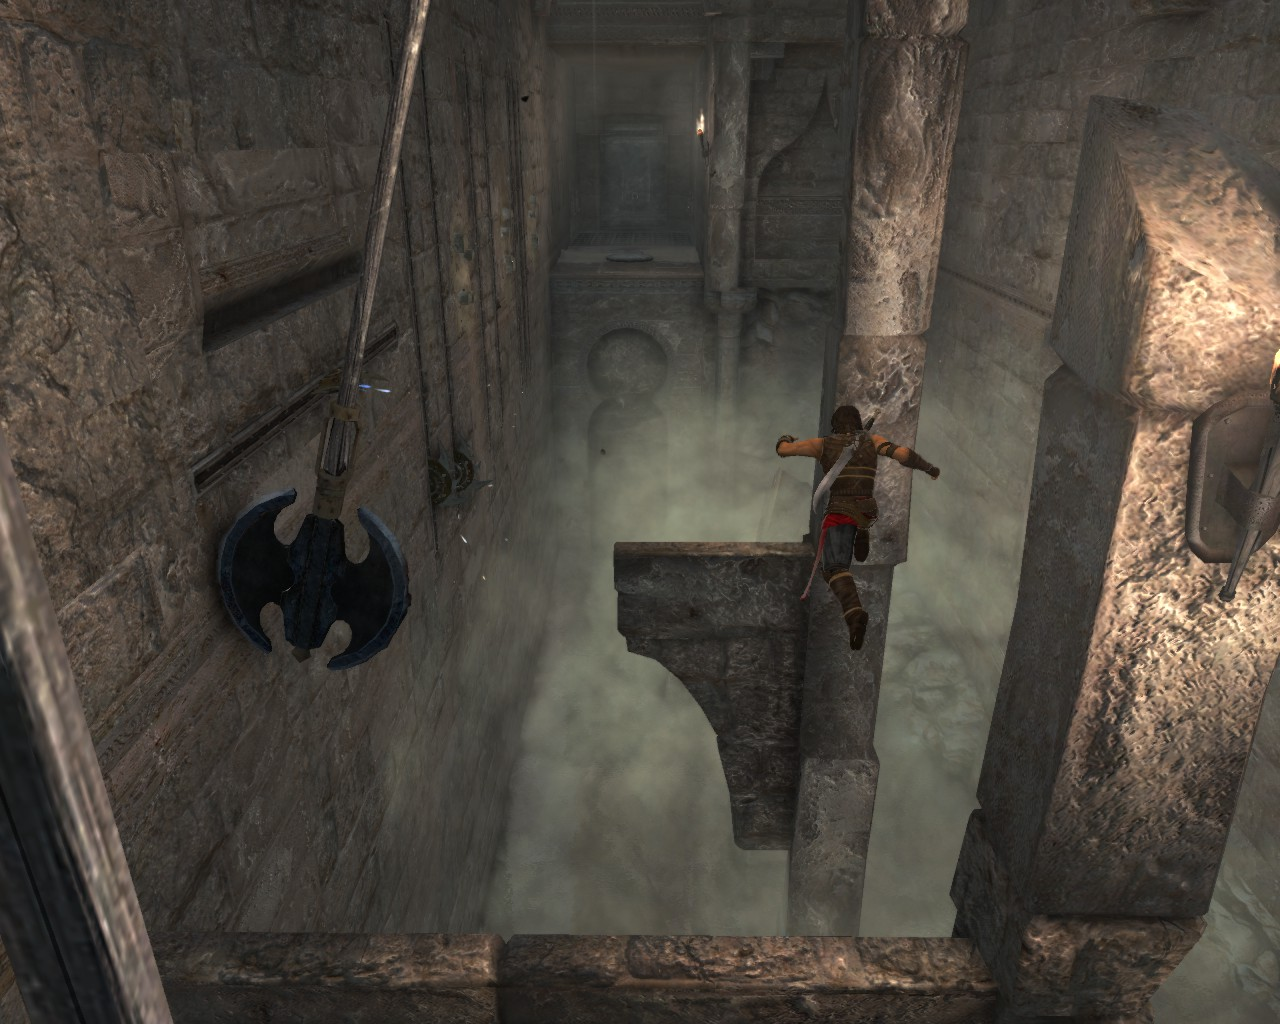 Prince of Persia 2014-06-03 23-46-07-05.jpg - Prince of Persia: The Forgotten Sands